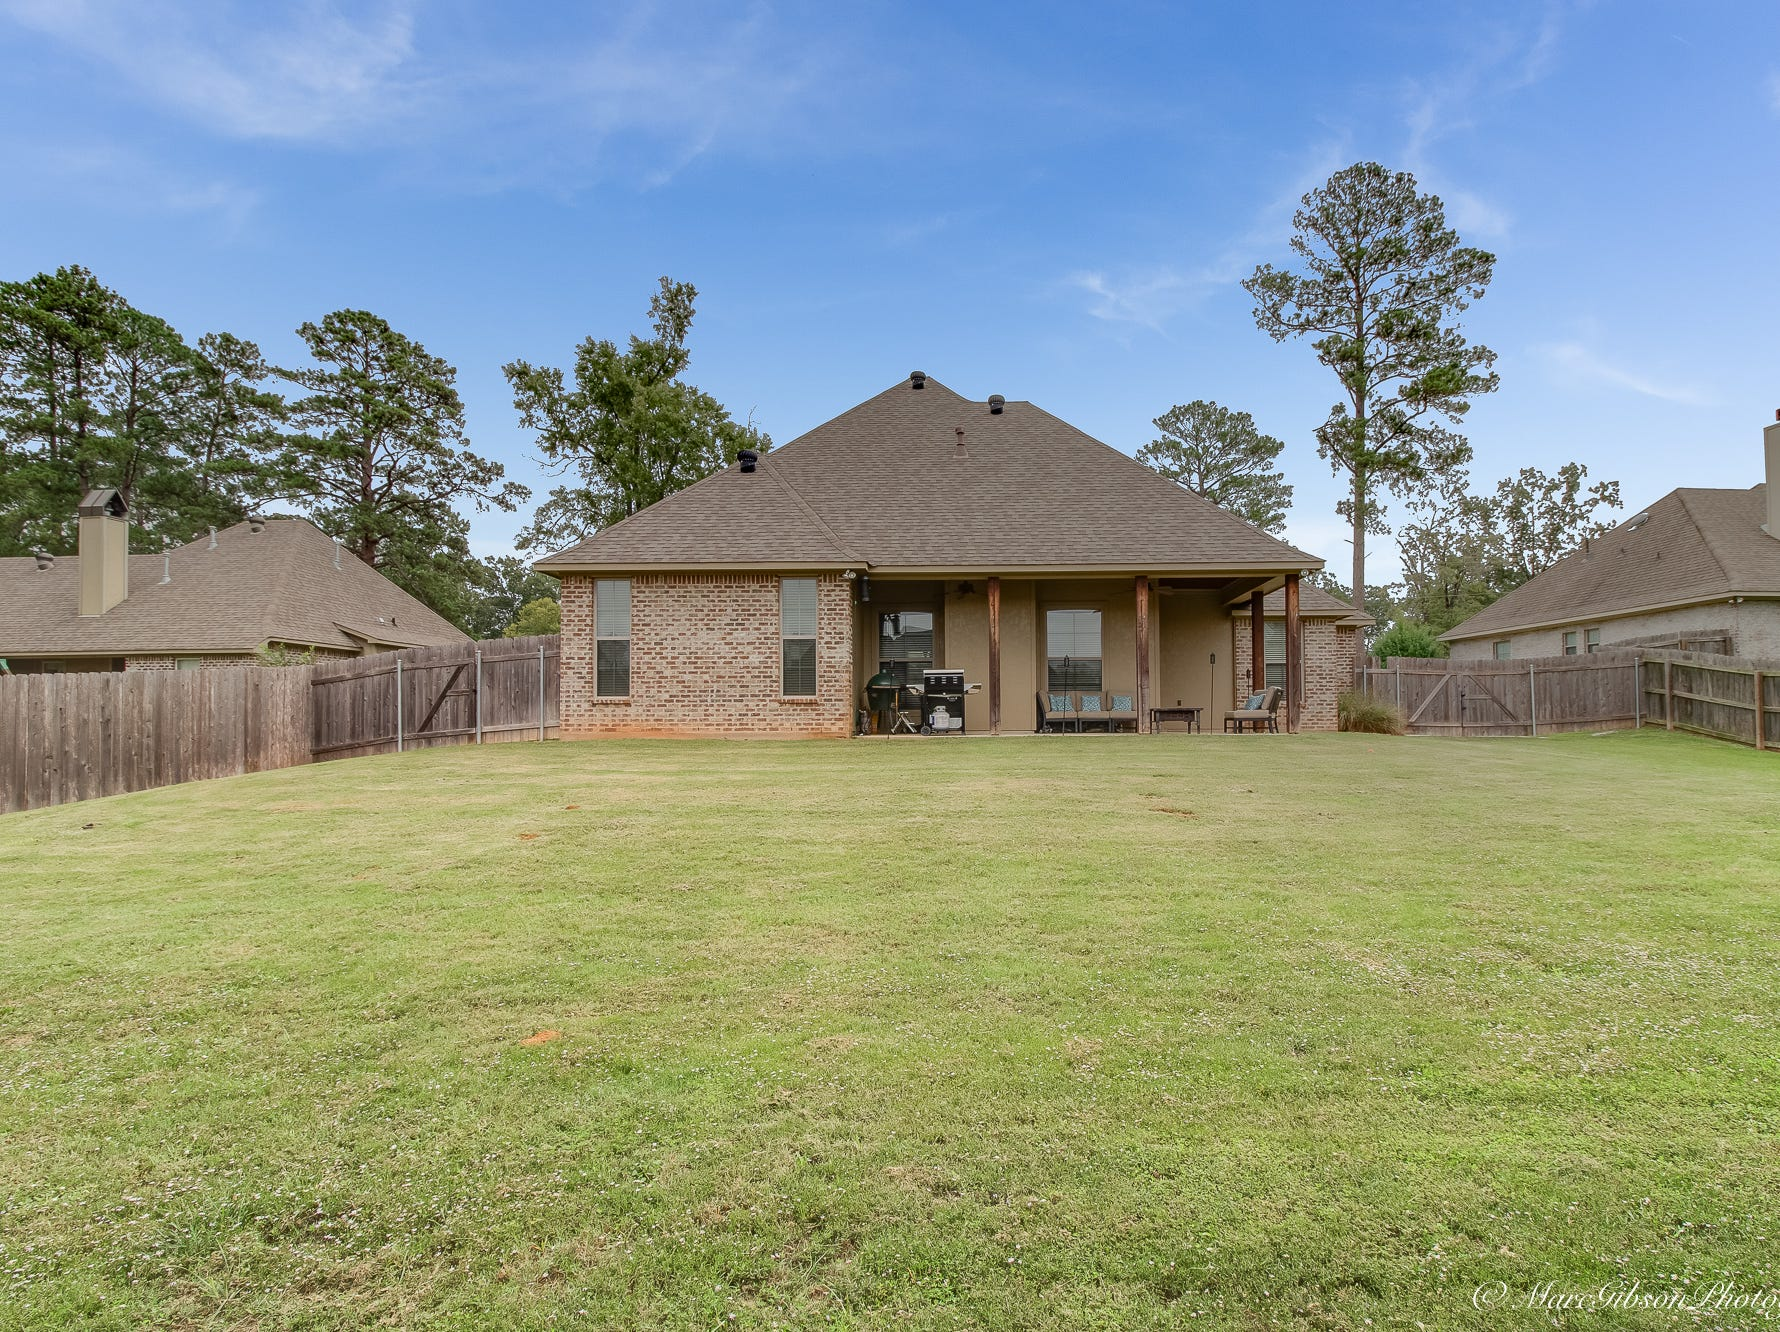 234 Old Palmetto Road,   Benton  Price: $389,900  Details: 5 bedrooms, 3 bathrooms, 2,605 square feet  Special features: Rustic chic home with gorgeous flooring, a cook's kitchen in dreamy whites, entertaining patio, large backyard.  Contact: Opha and Dianne, 752-2700